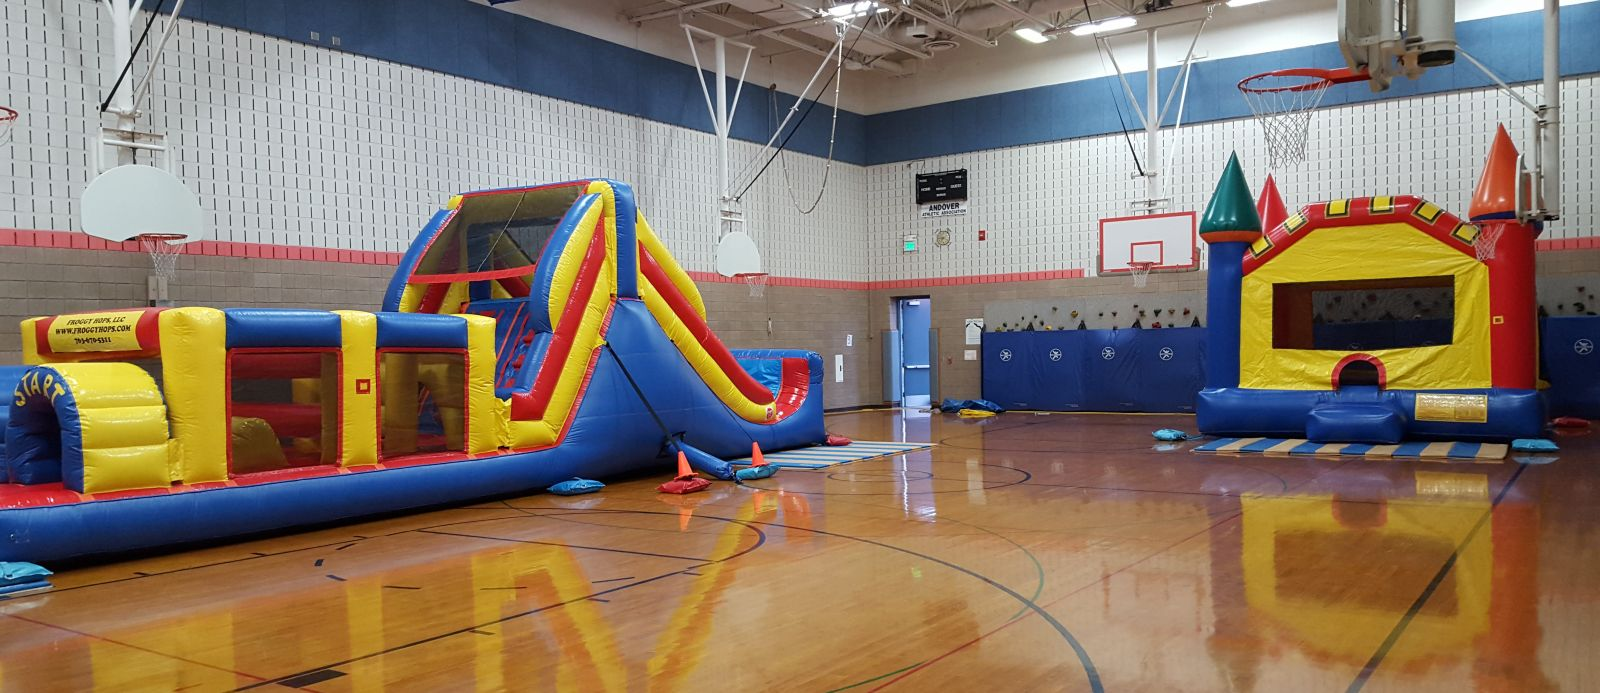 Inflatable Obstacle Course and Bounce House in school gym